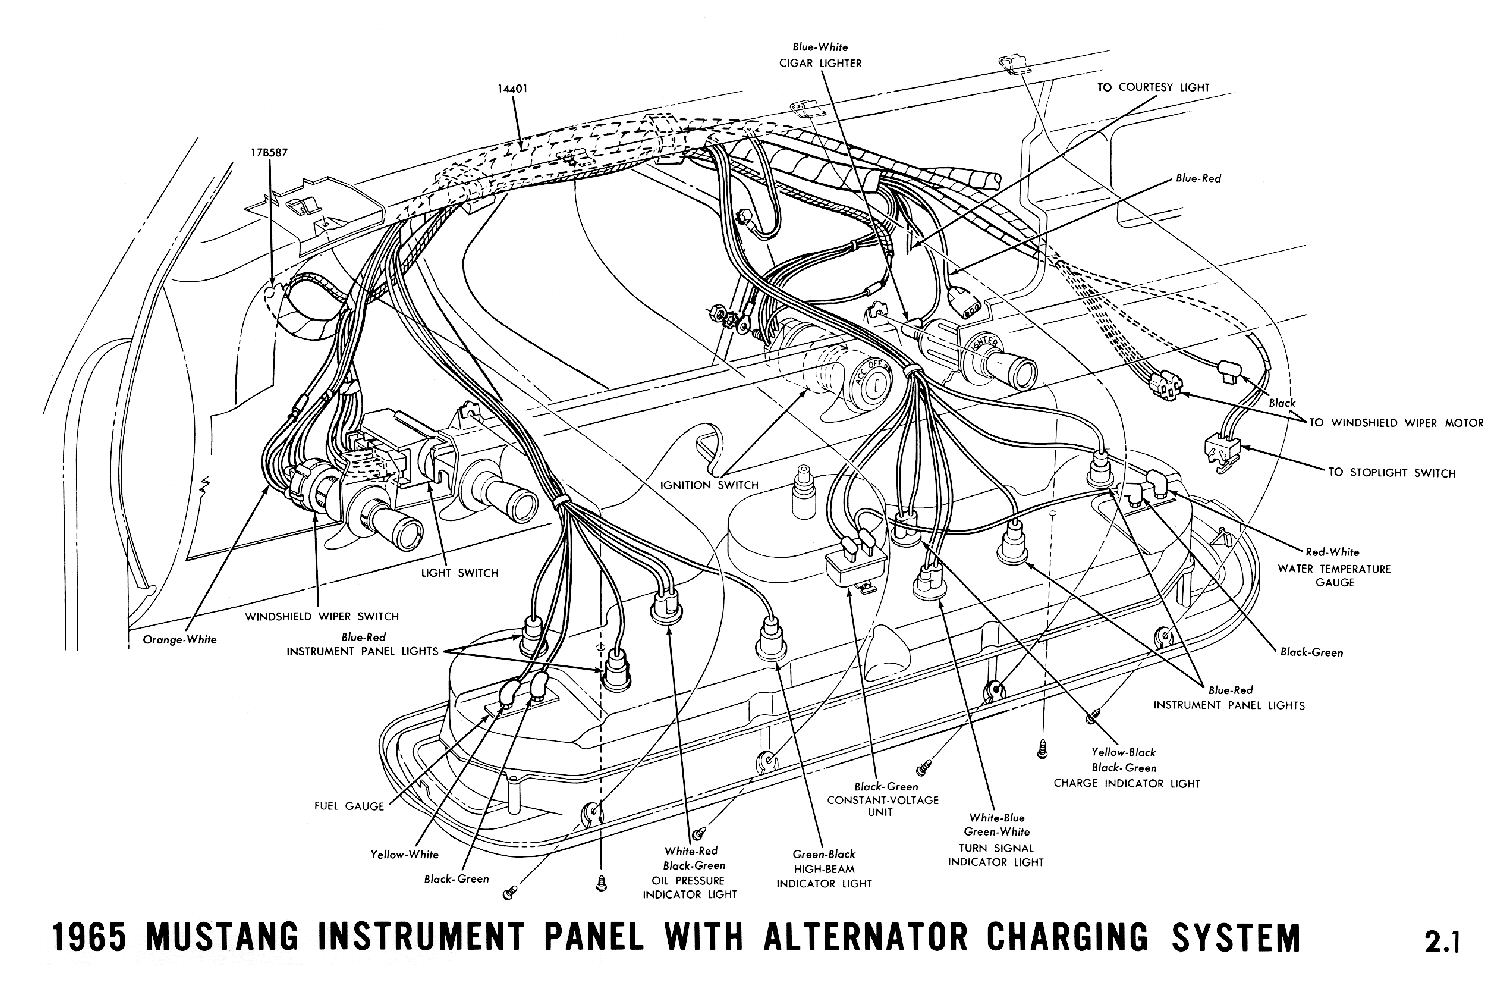 1965a 1965 mustang wiring diagrams average joe restoration 1964 ford falcon wiring diagram at suagrazia.org